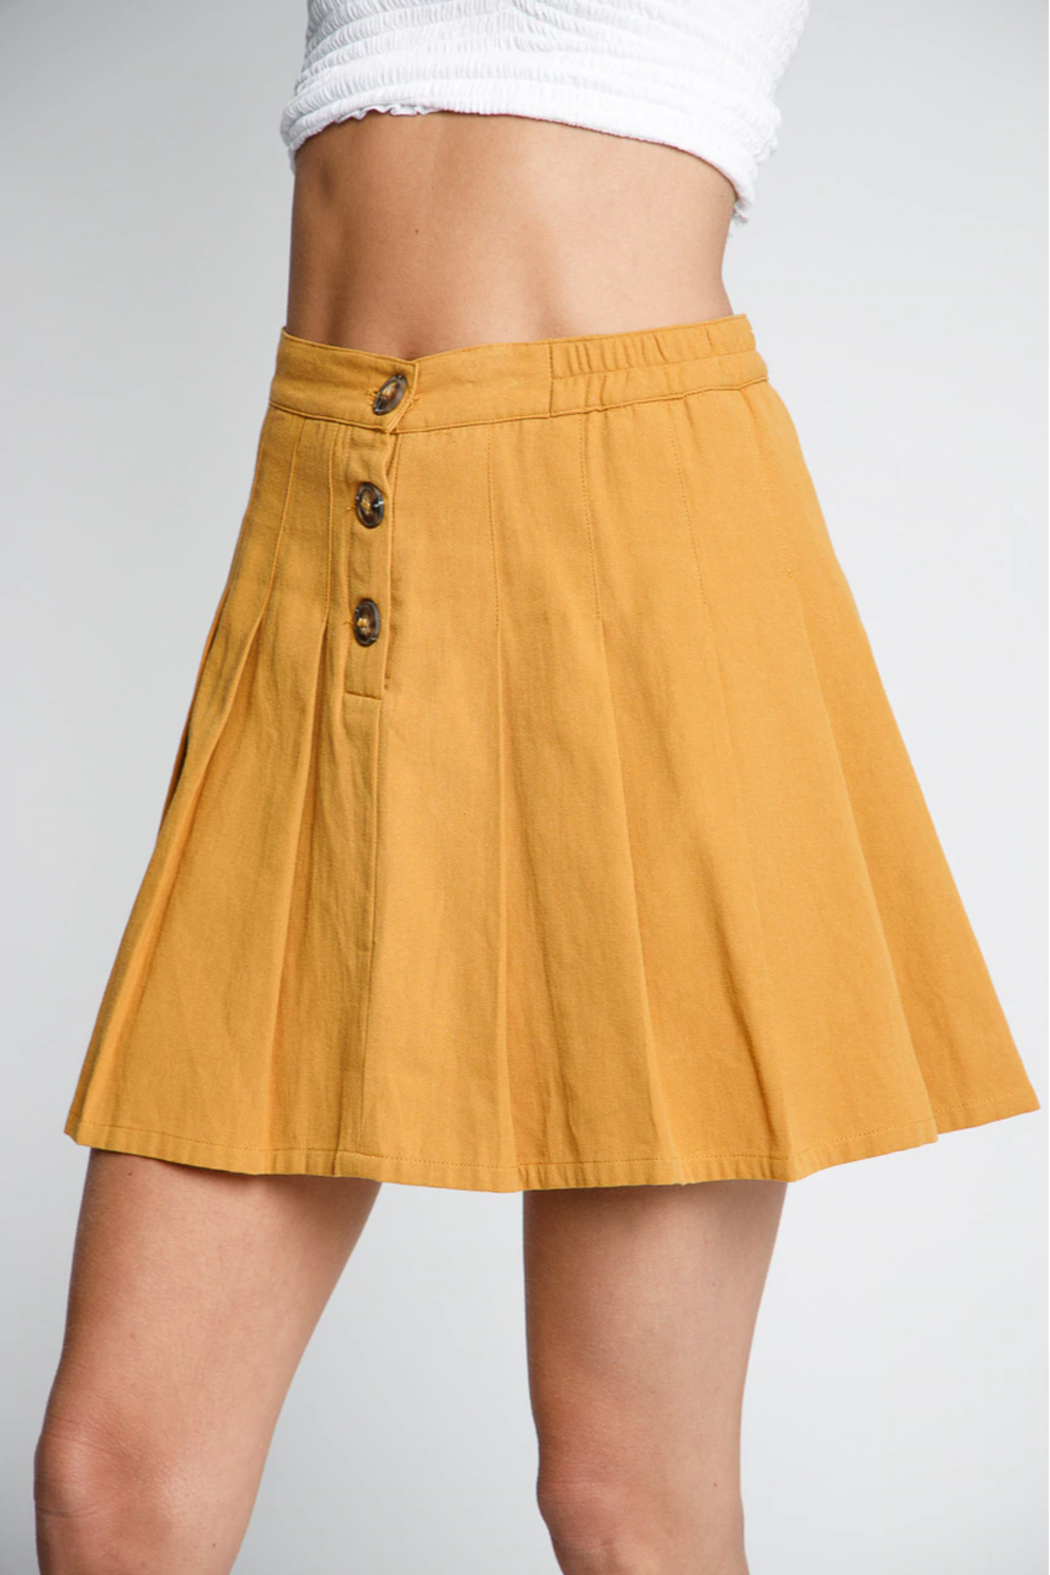 Wholesale Fashion Couture Mustard Fit n' Flare Skirt - Main Image